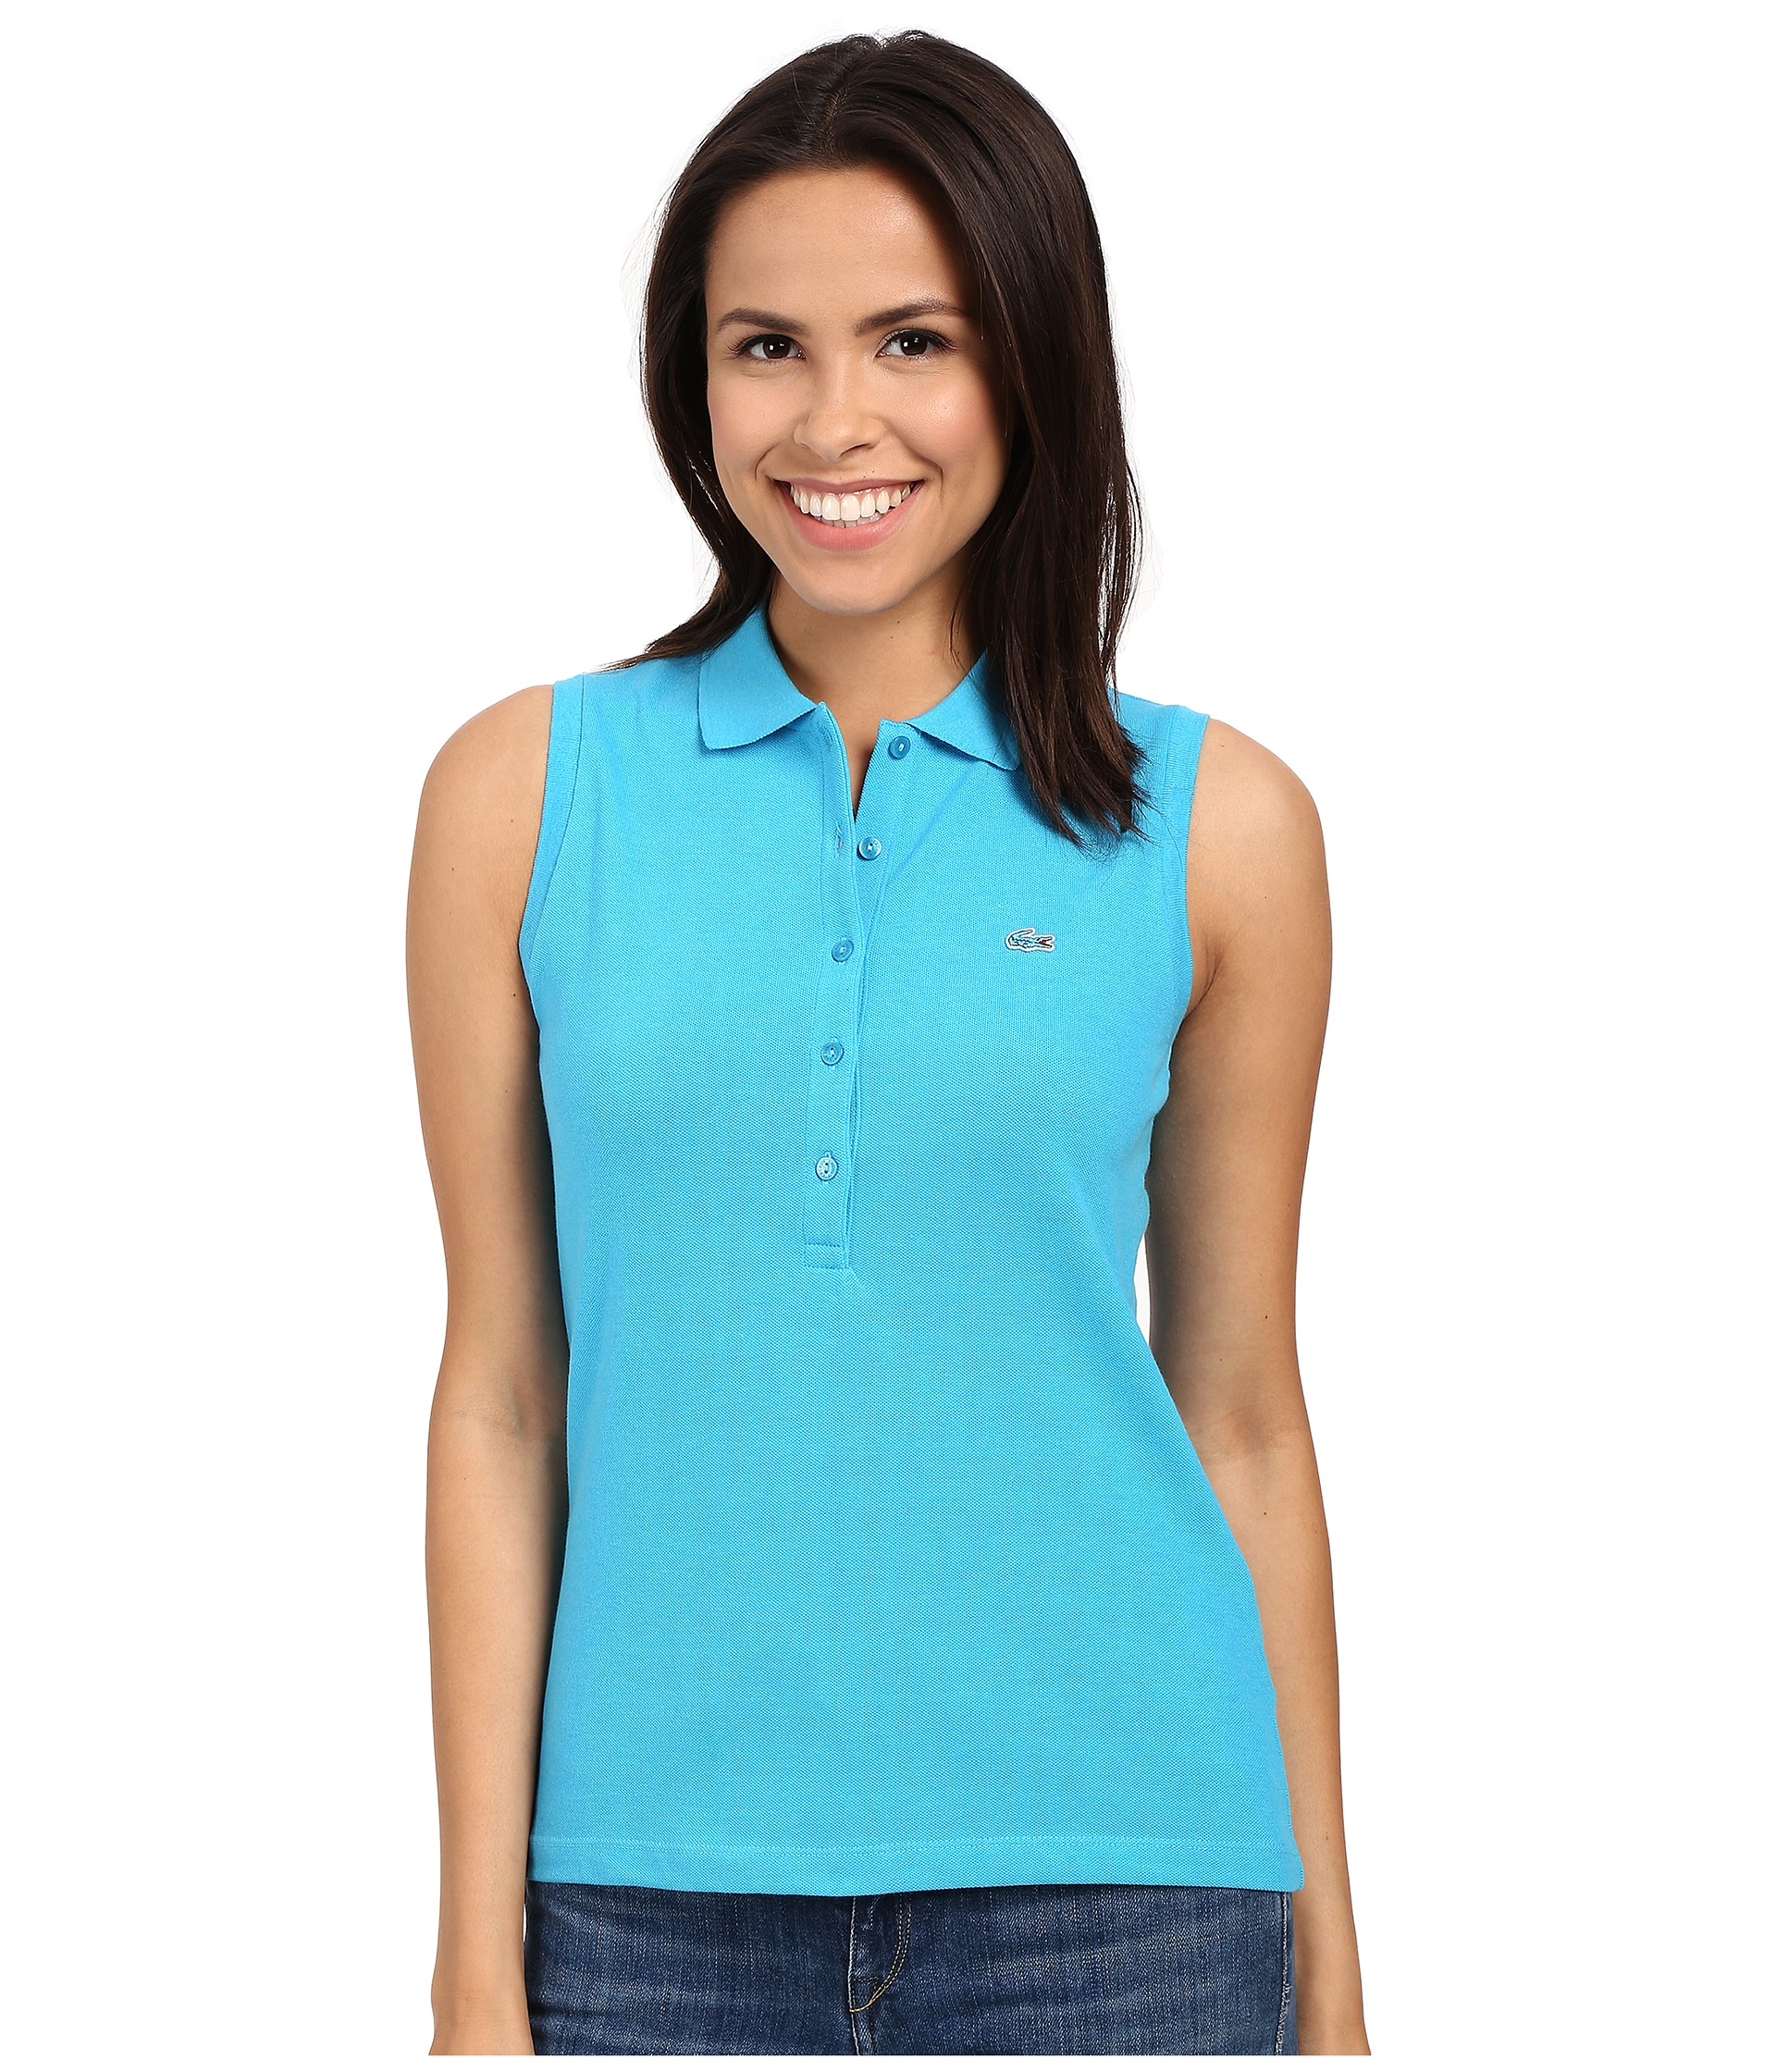 44f68f021b Lacoste Sleeveless Slim Fit Stretch Pique Polo Shirt in Blue - Lyst